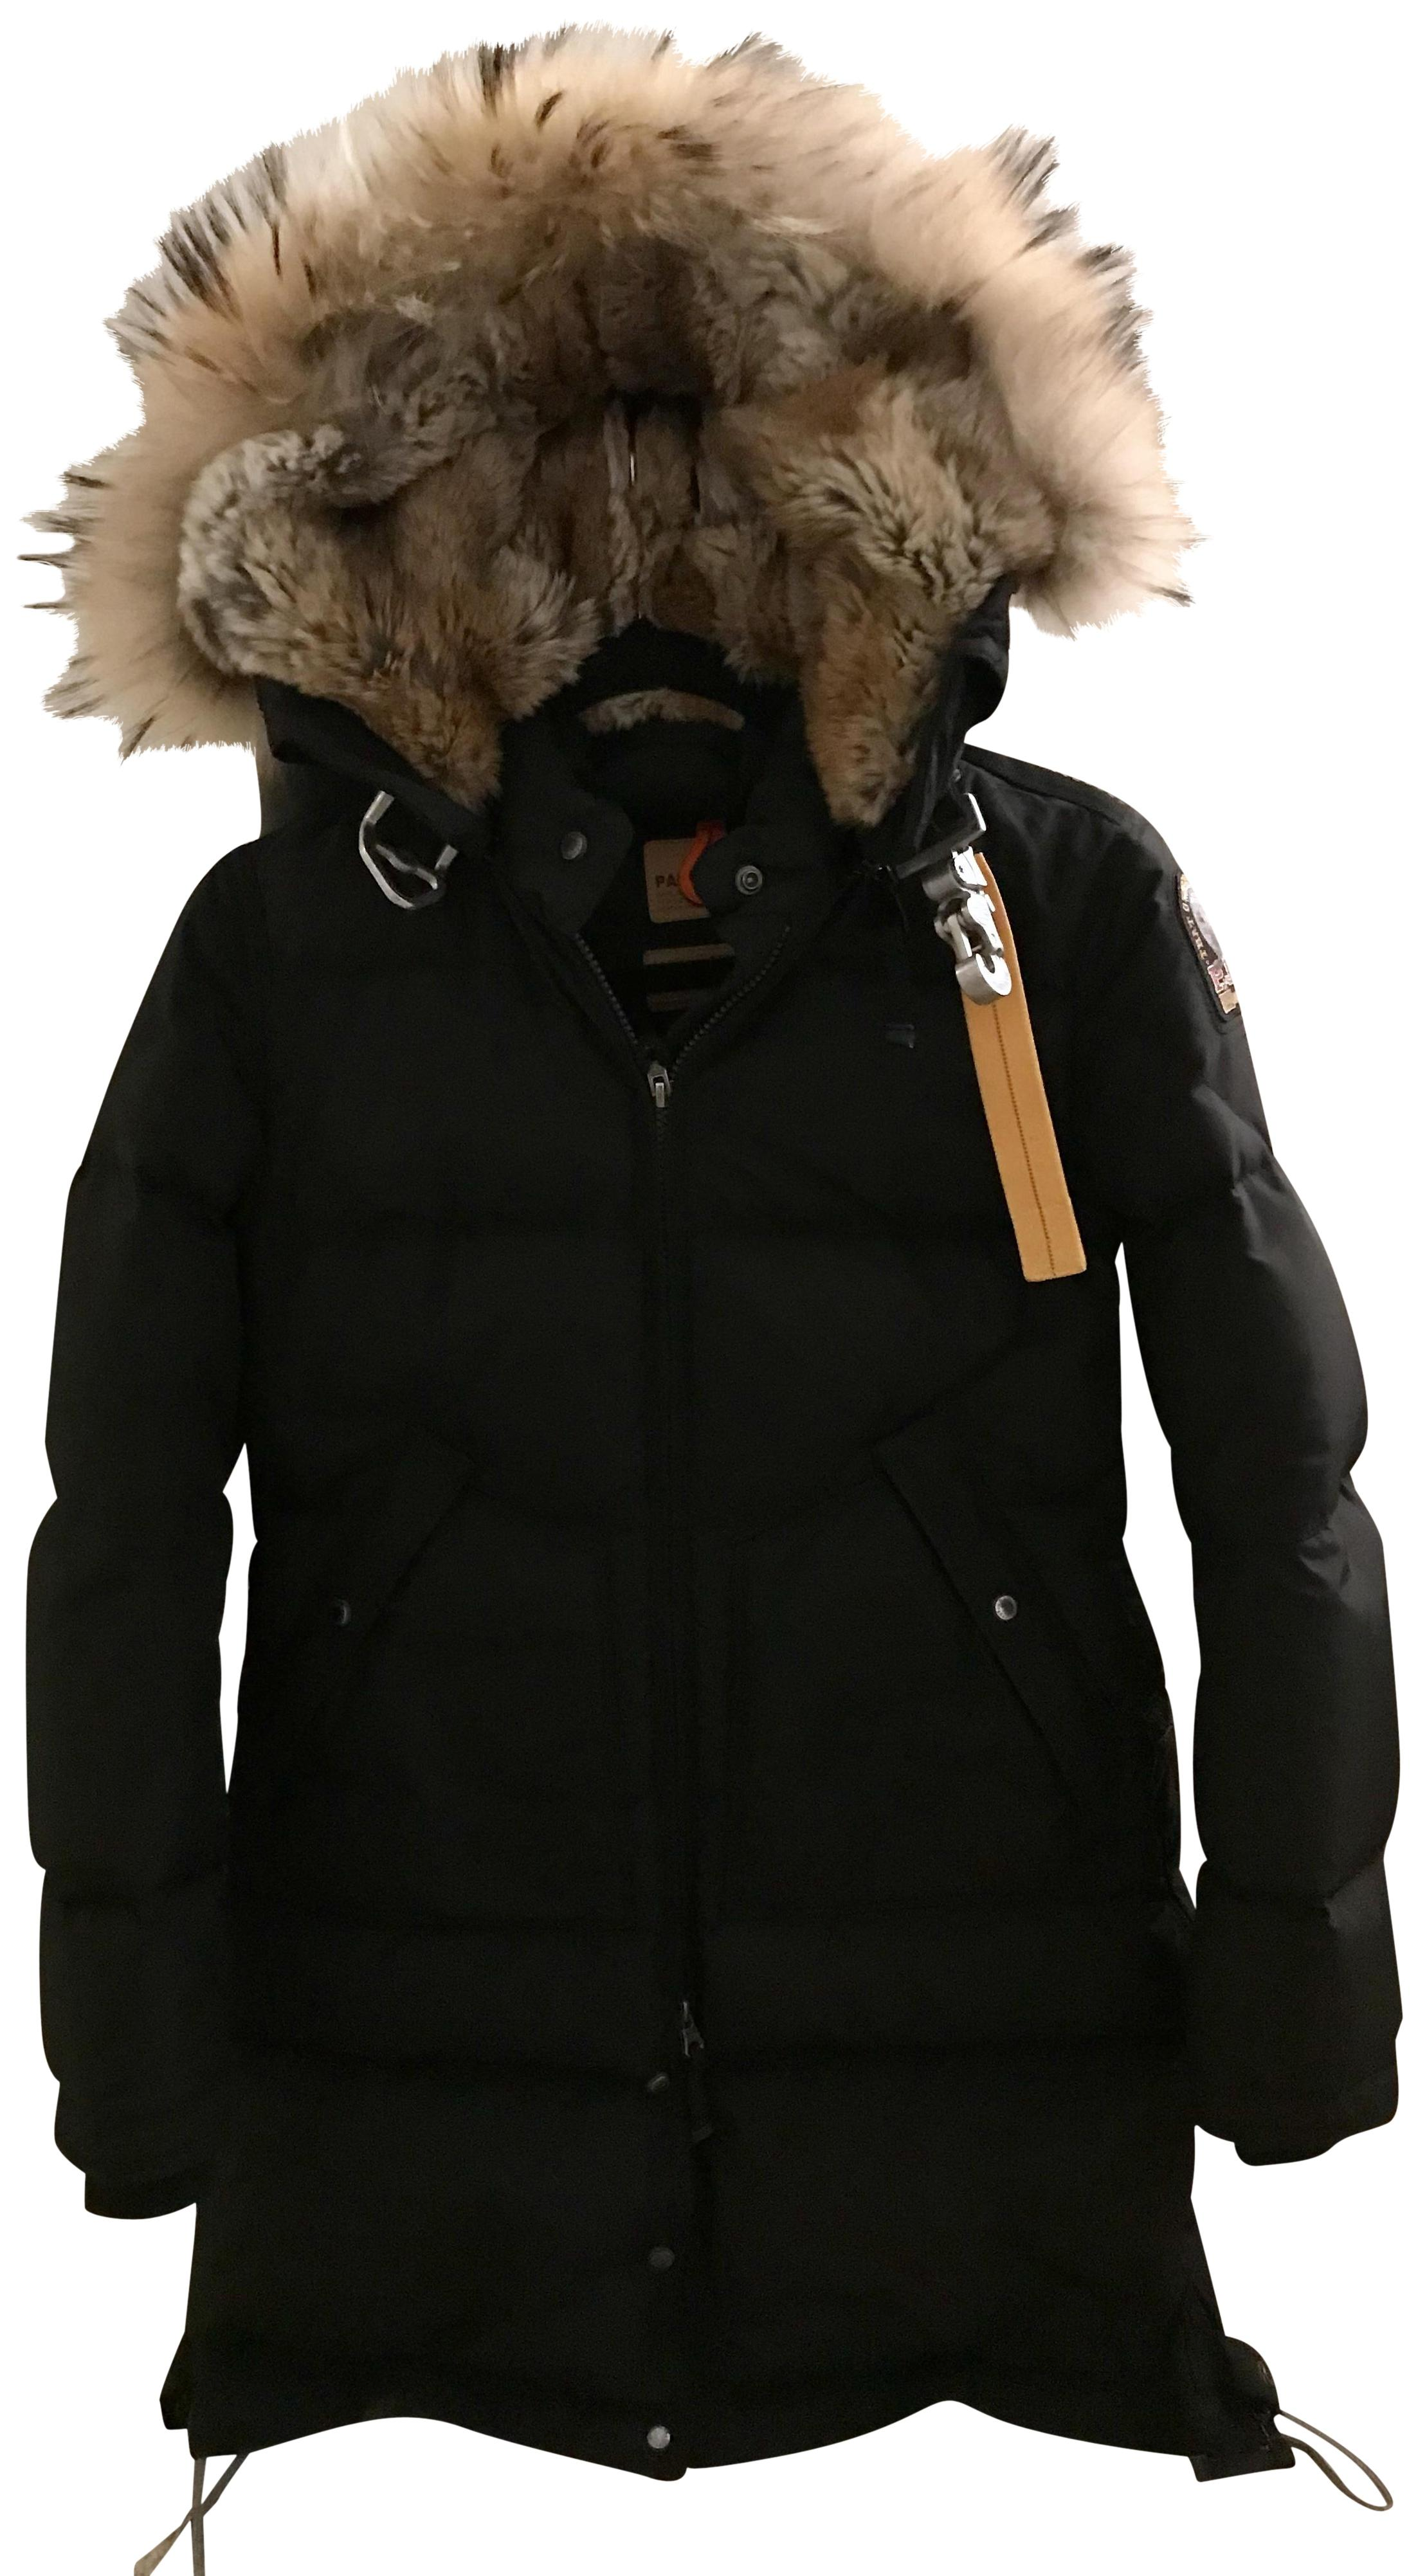 Parajumpers Coat; Parajumpers Coat